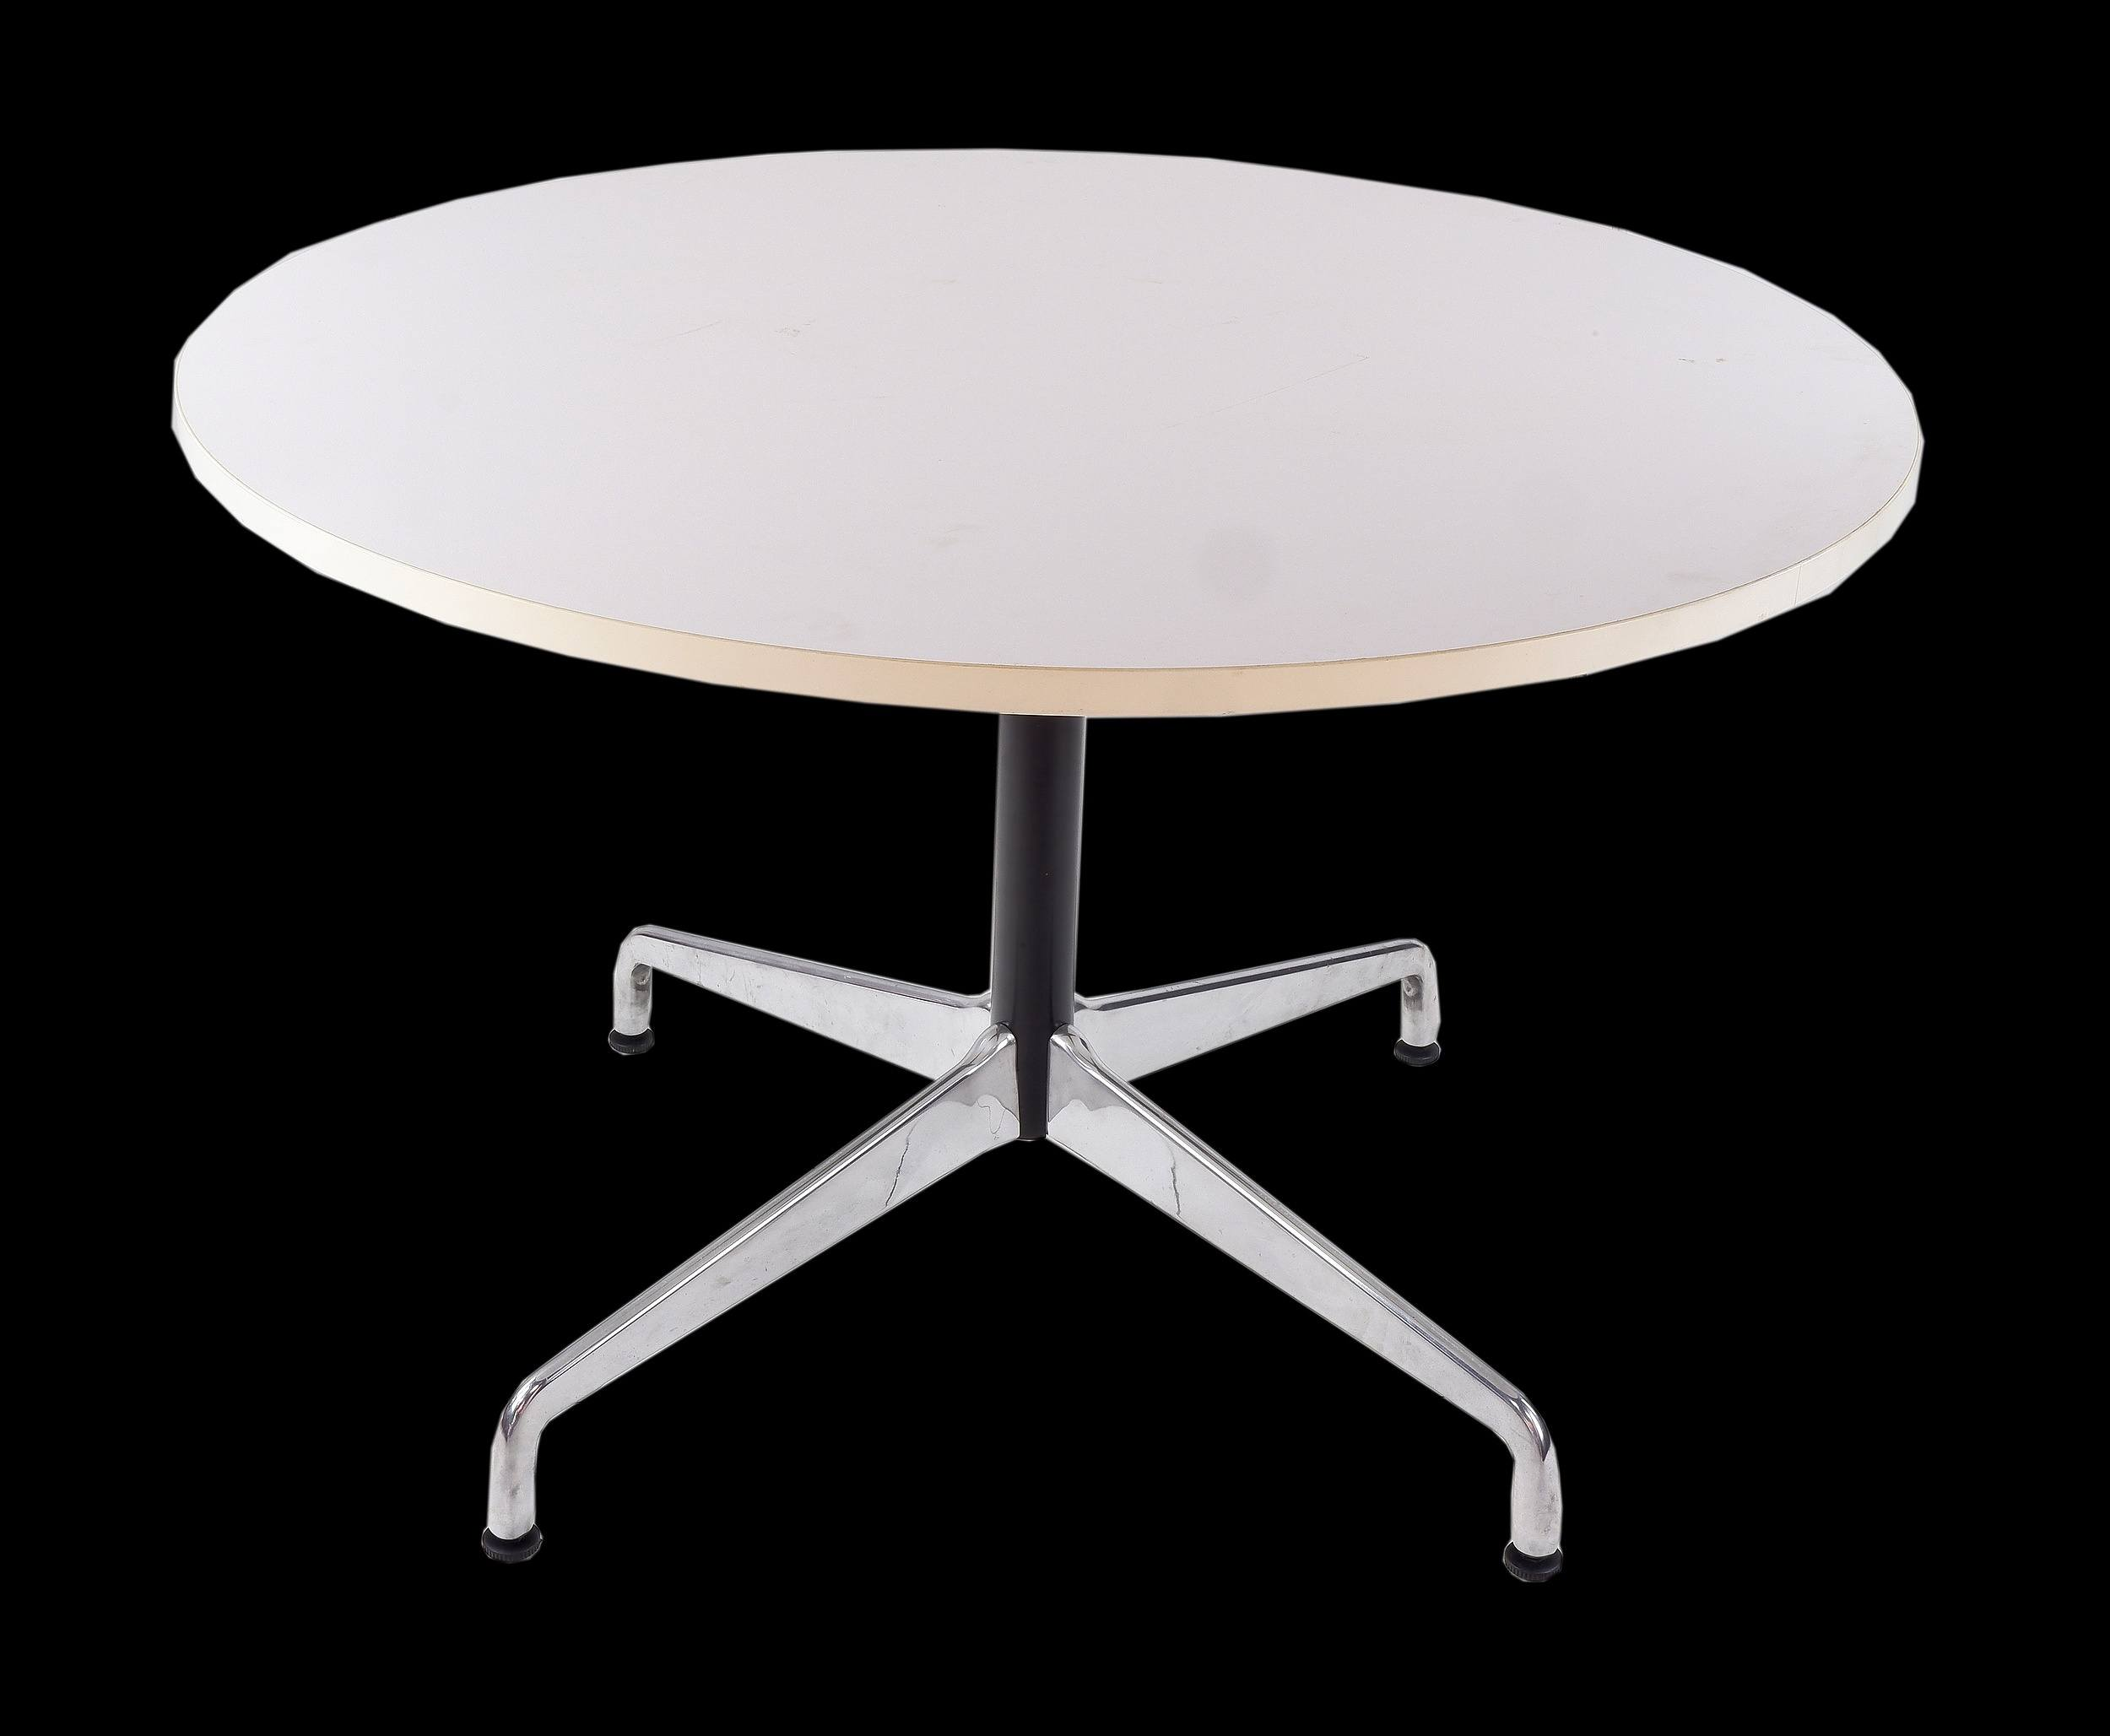 'Eames Style Circular Dining Table'